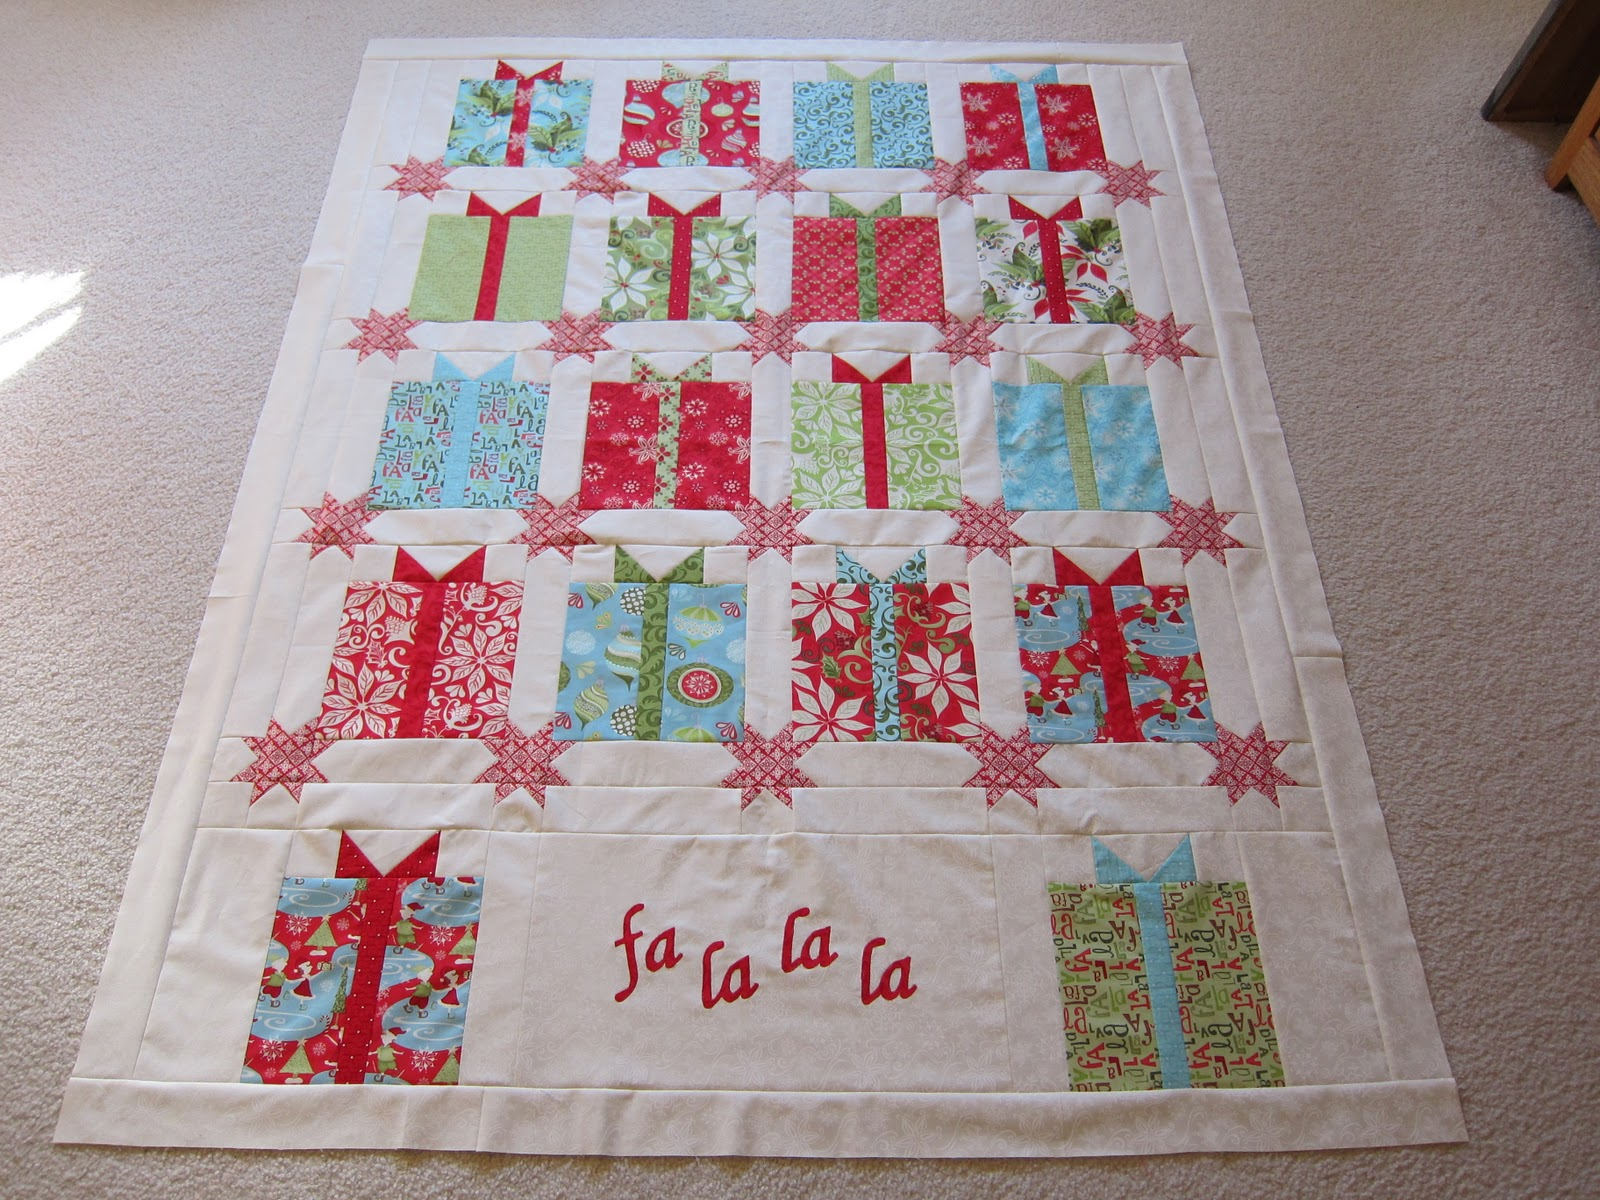 krislovesfabric: Christmas Present quilt top finished!